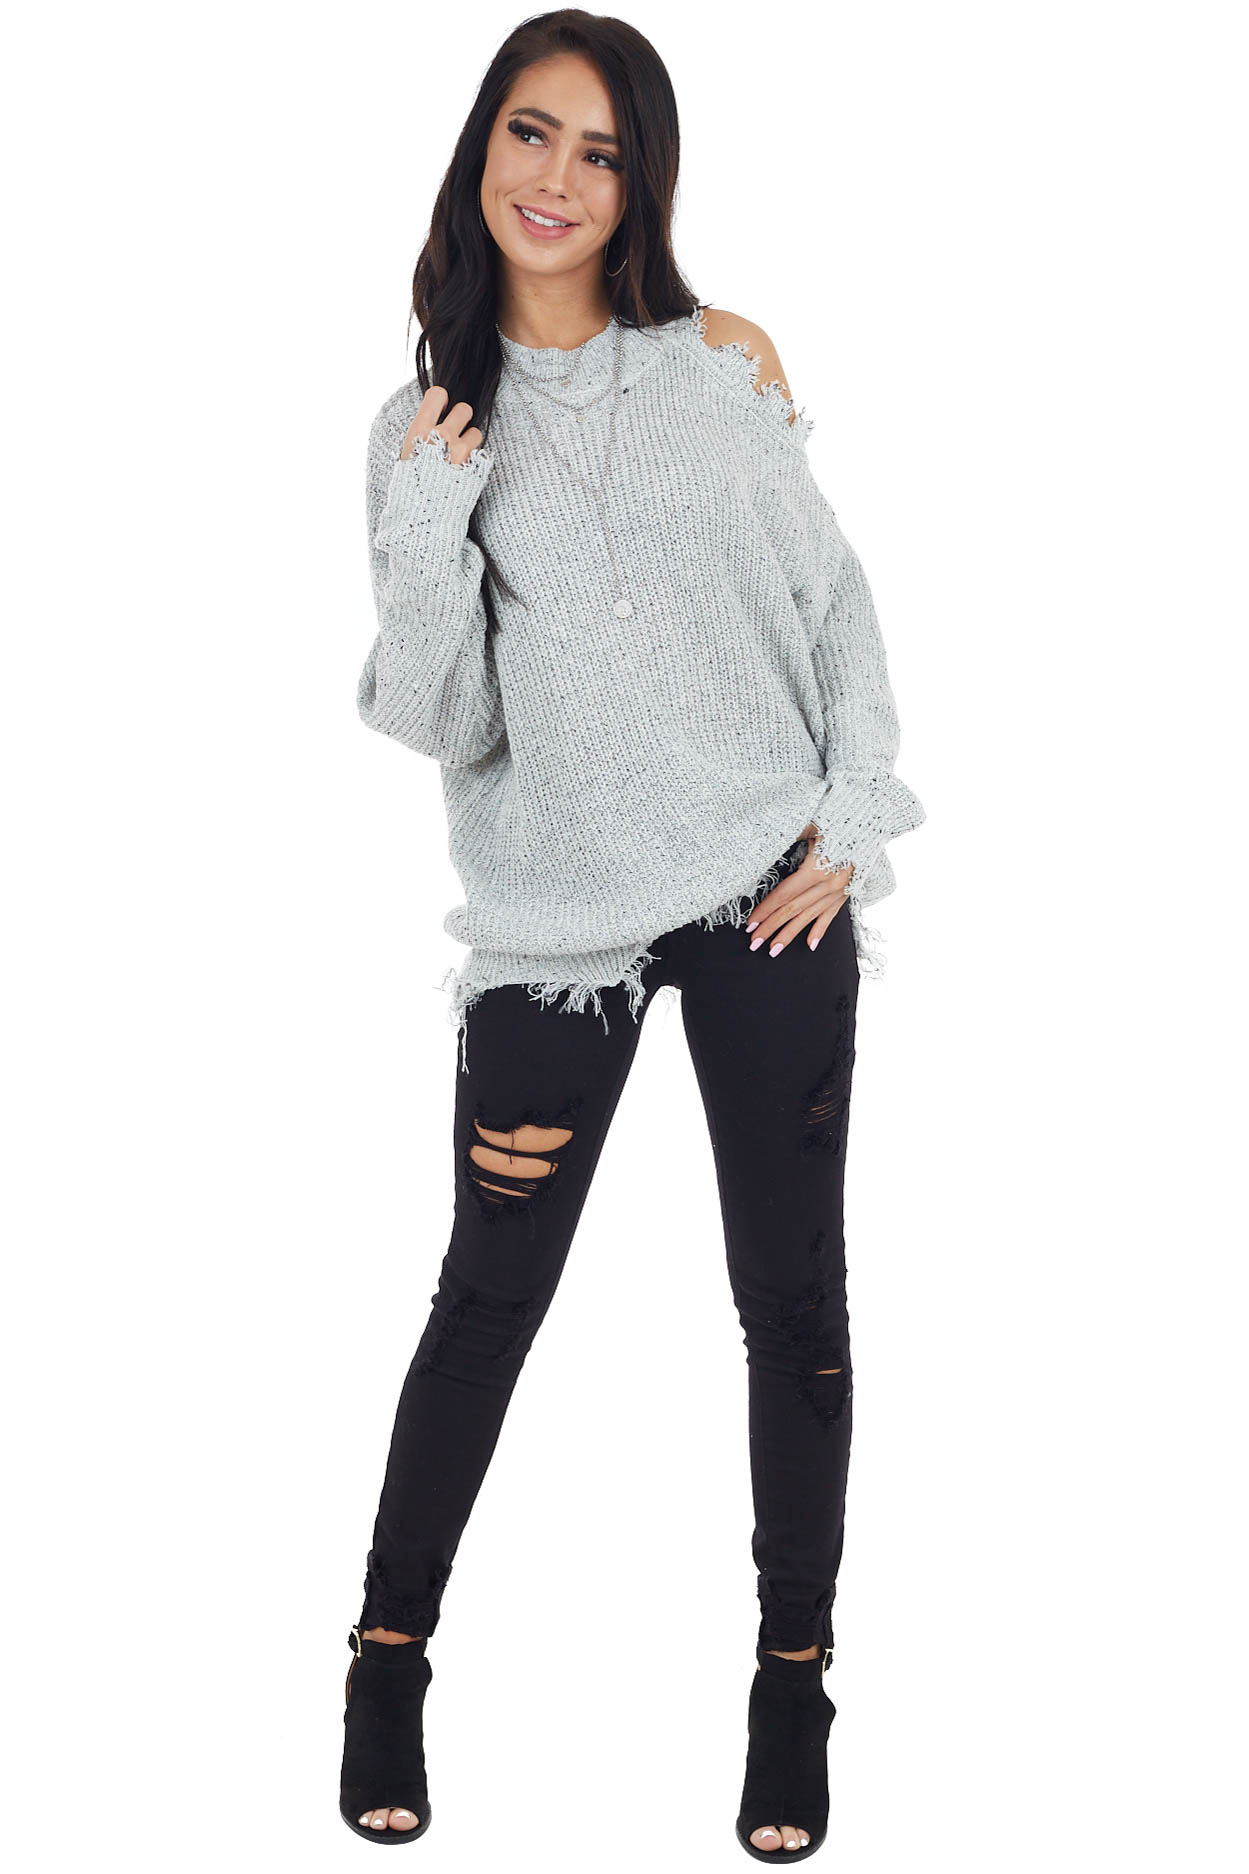 Heather Grey Two Toned Distressed Lightweight Sweater